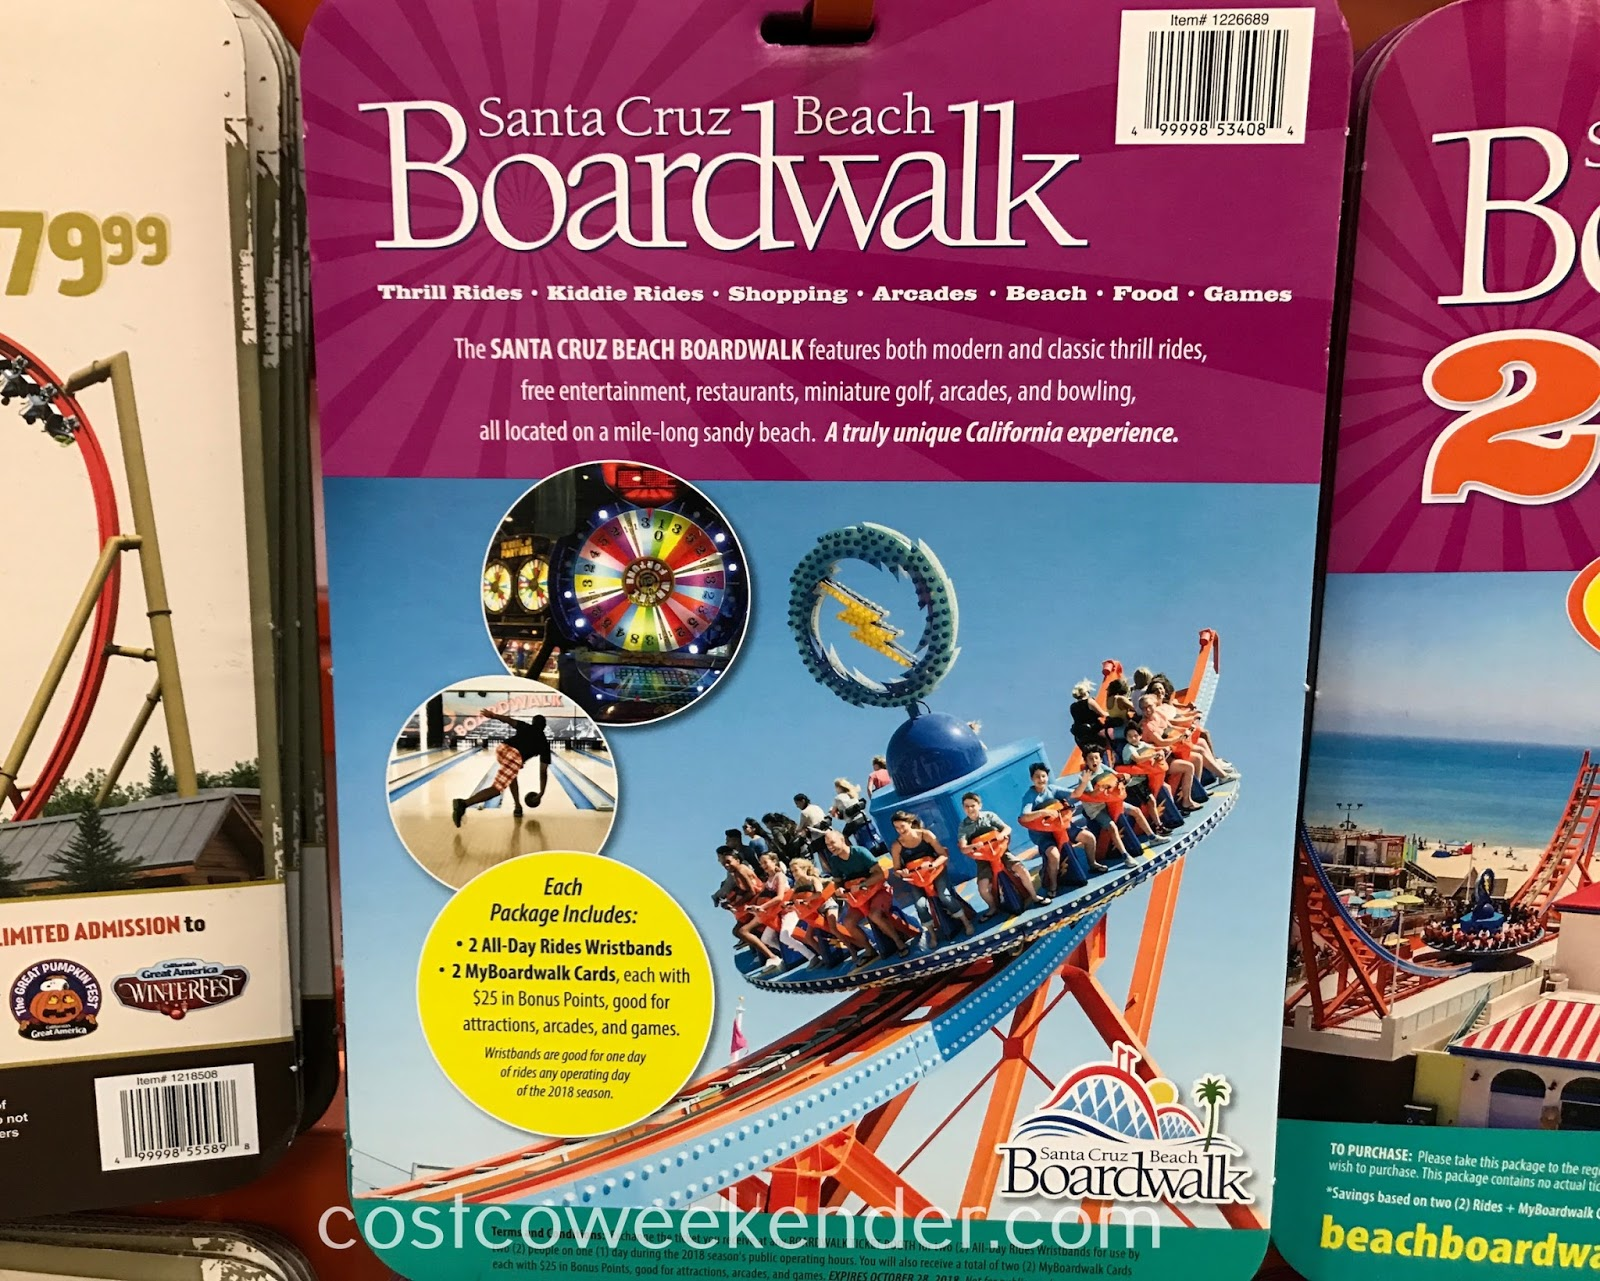 Costco 1226689 - Santa Cruz Beach Boardwalk 2018 Combo Pack: great for families and kids alike